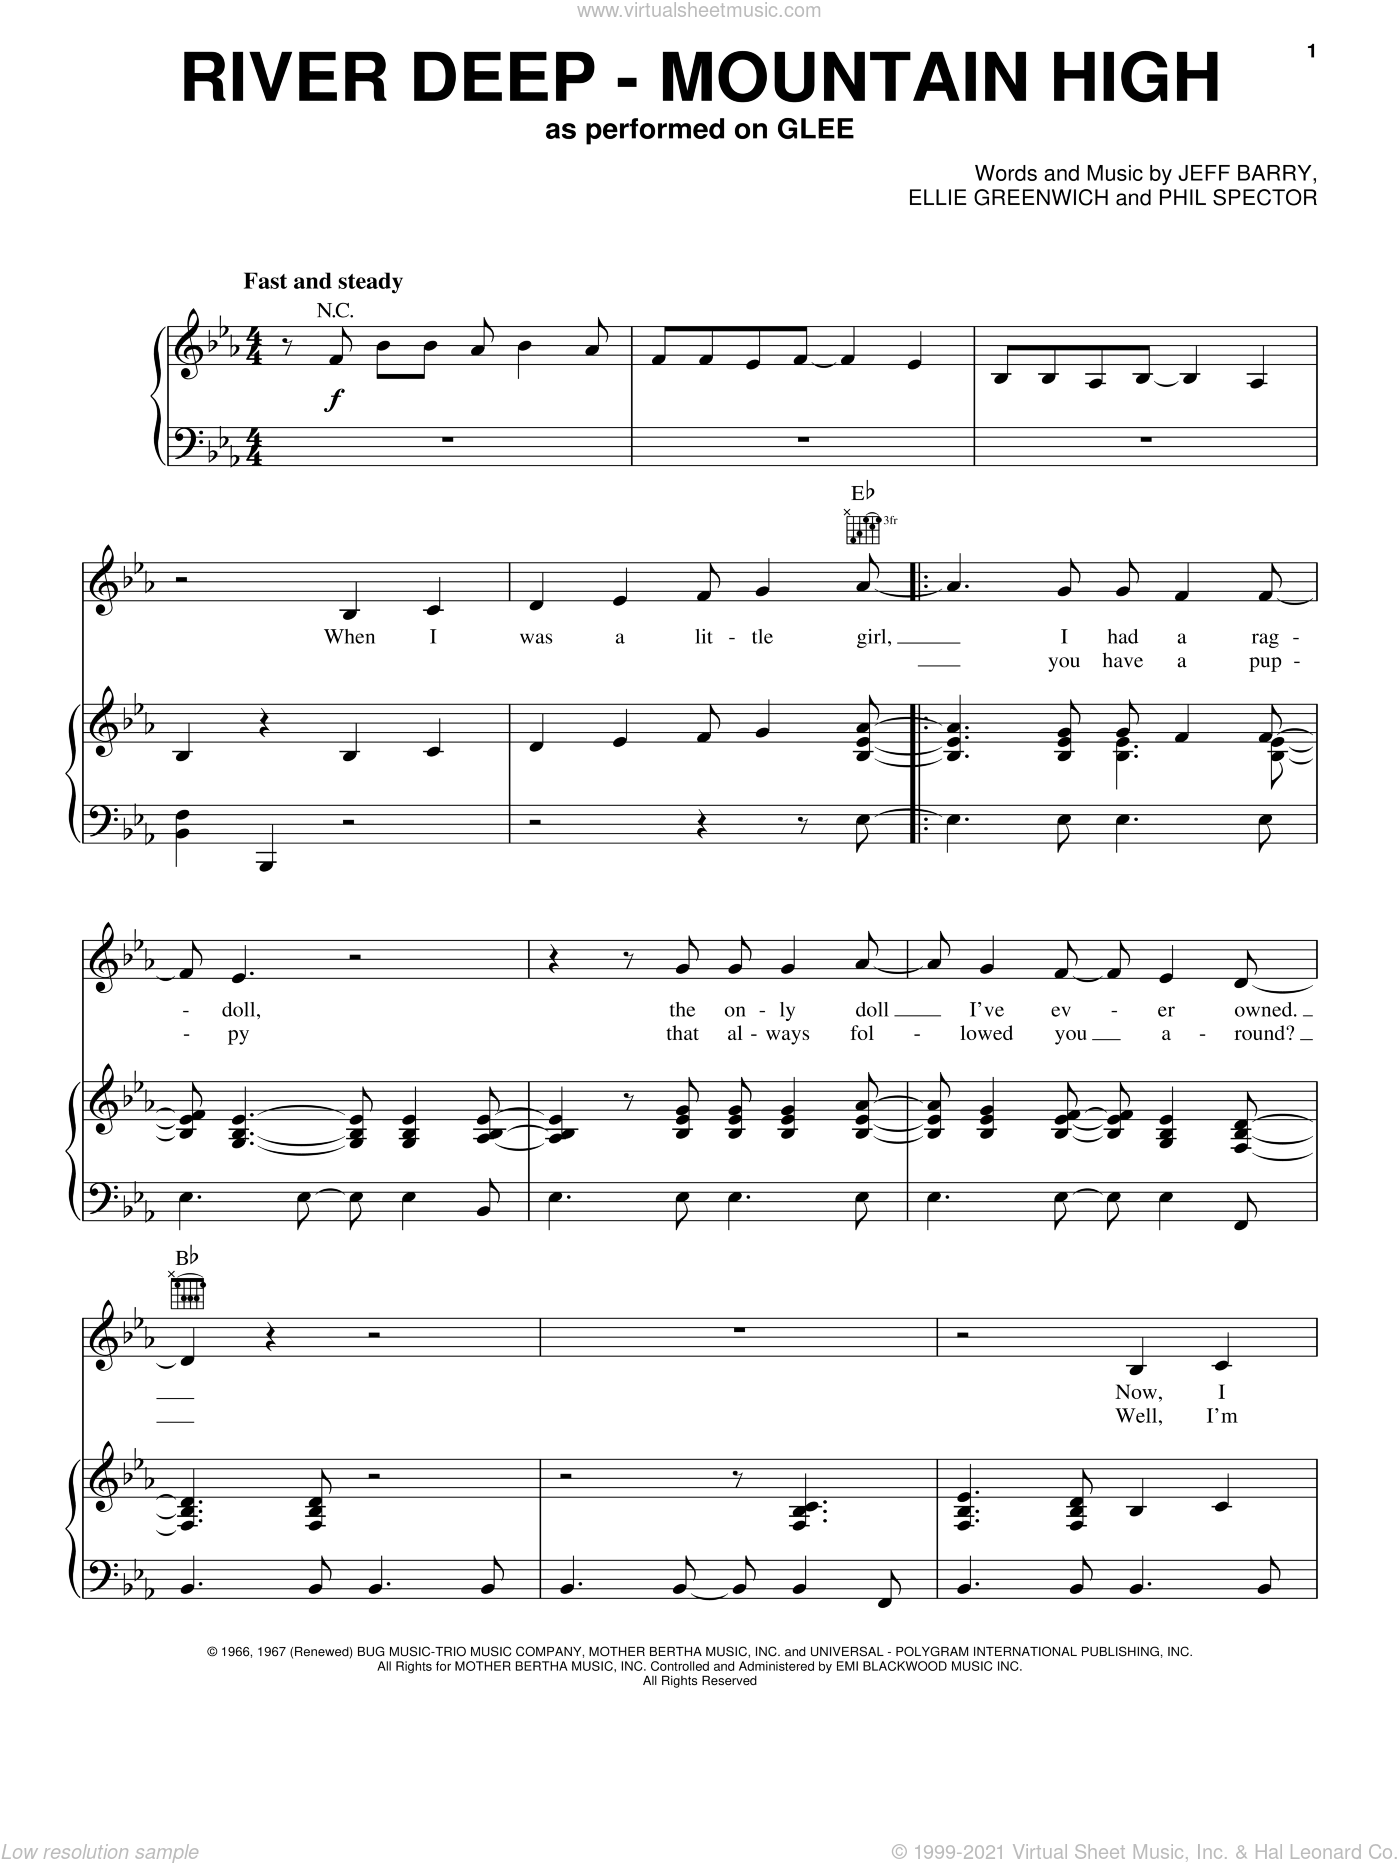 River Deep - Mountain High sheet music for voice, piano or guitar by Glee Cast, Celine Dion, Miscellaneous, Tina Turner, Ellie Greenwich, Jeff Barry and Phil Spector, intermediate skill level